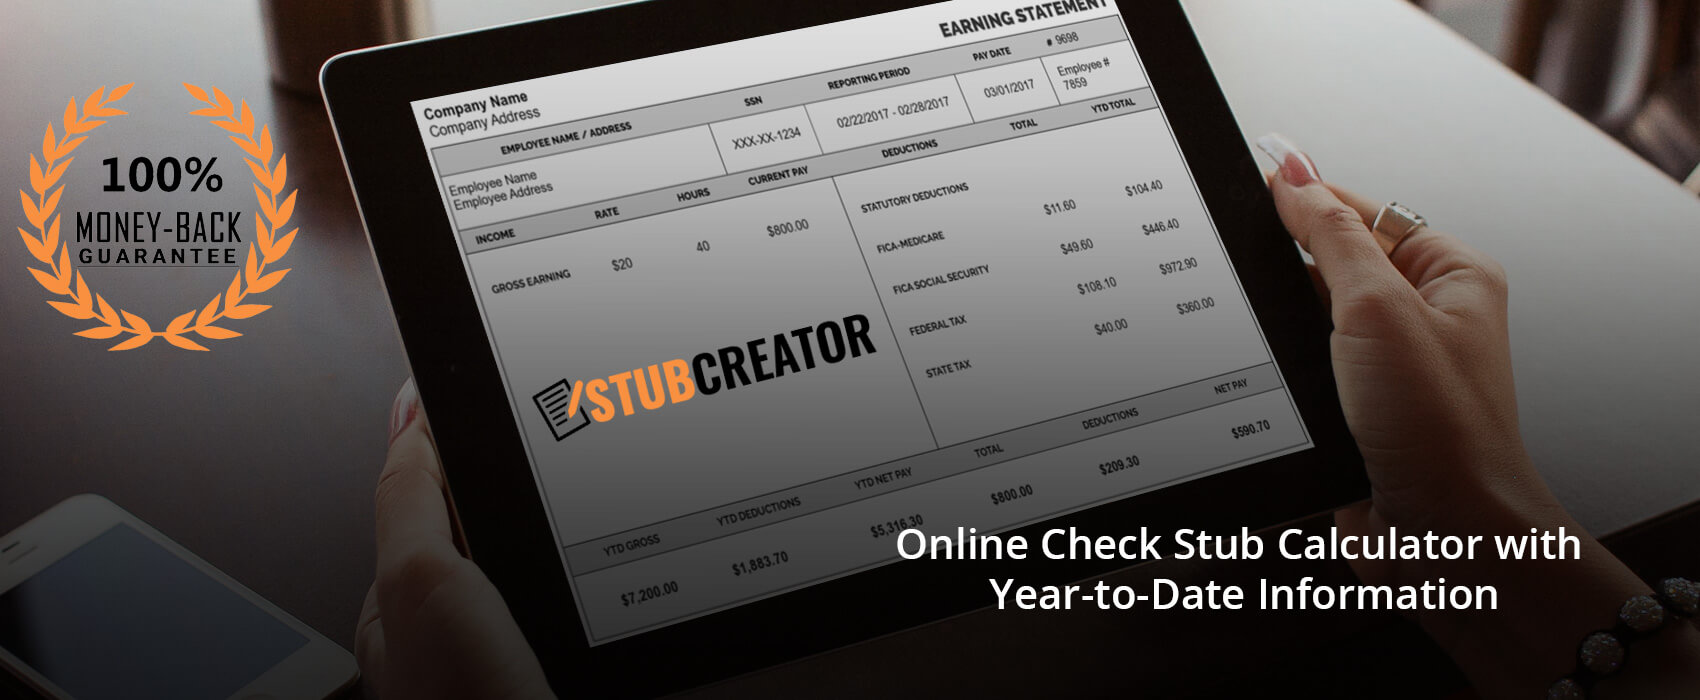 online check stub calculator with year to date information stub